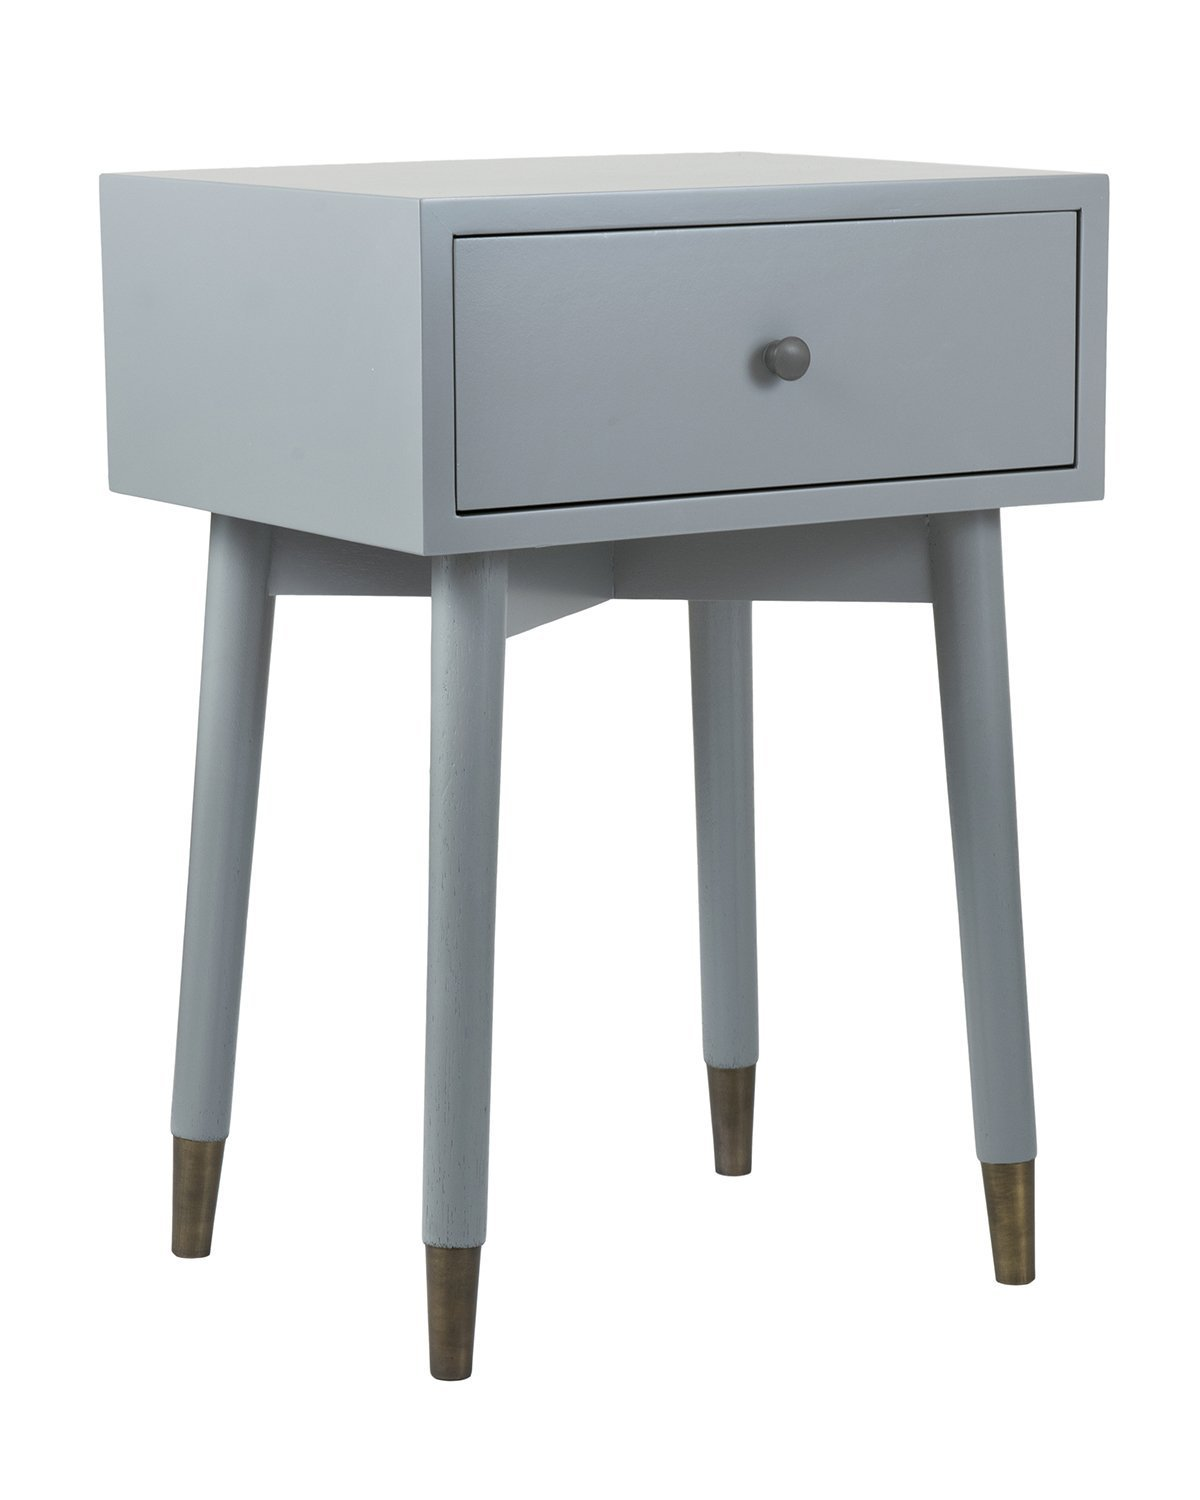 east main weeks acacia wood square accent table grey black and white striped patio umbrella changing dresser zebra knotty pine bedroom furniture clear acrylic end coffee calgary